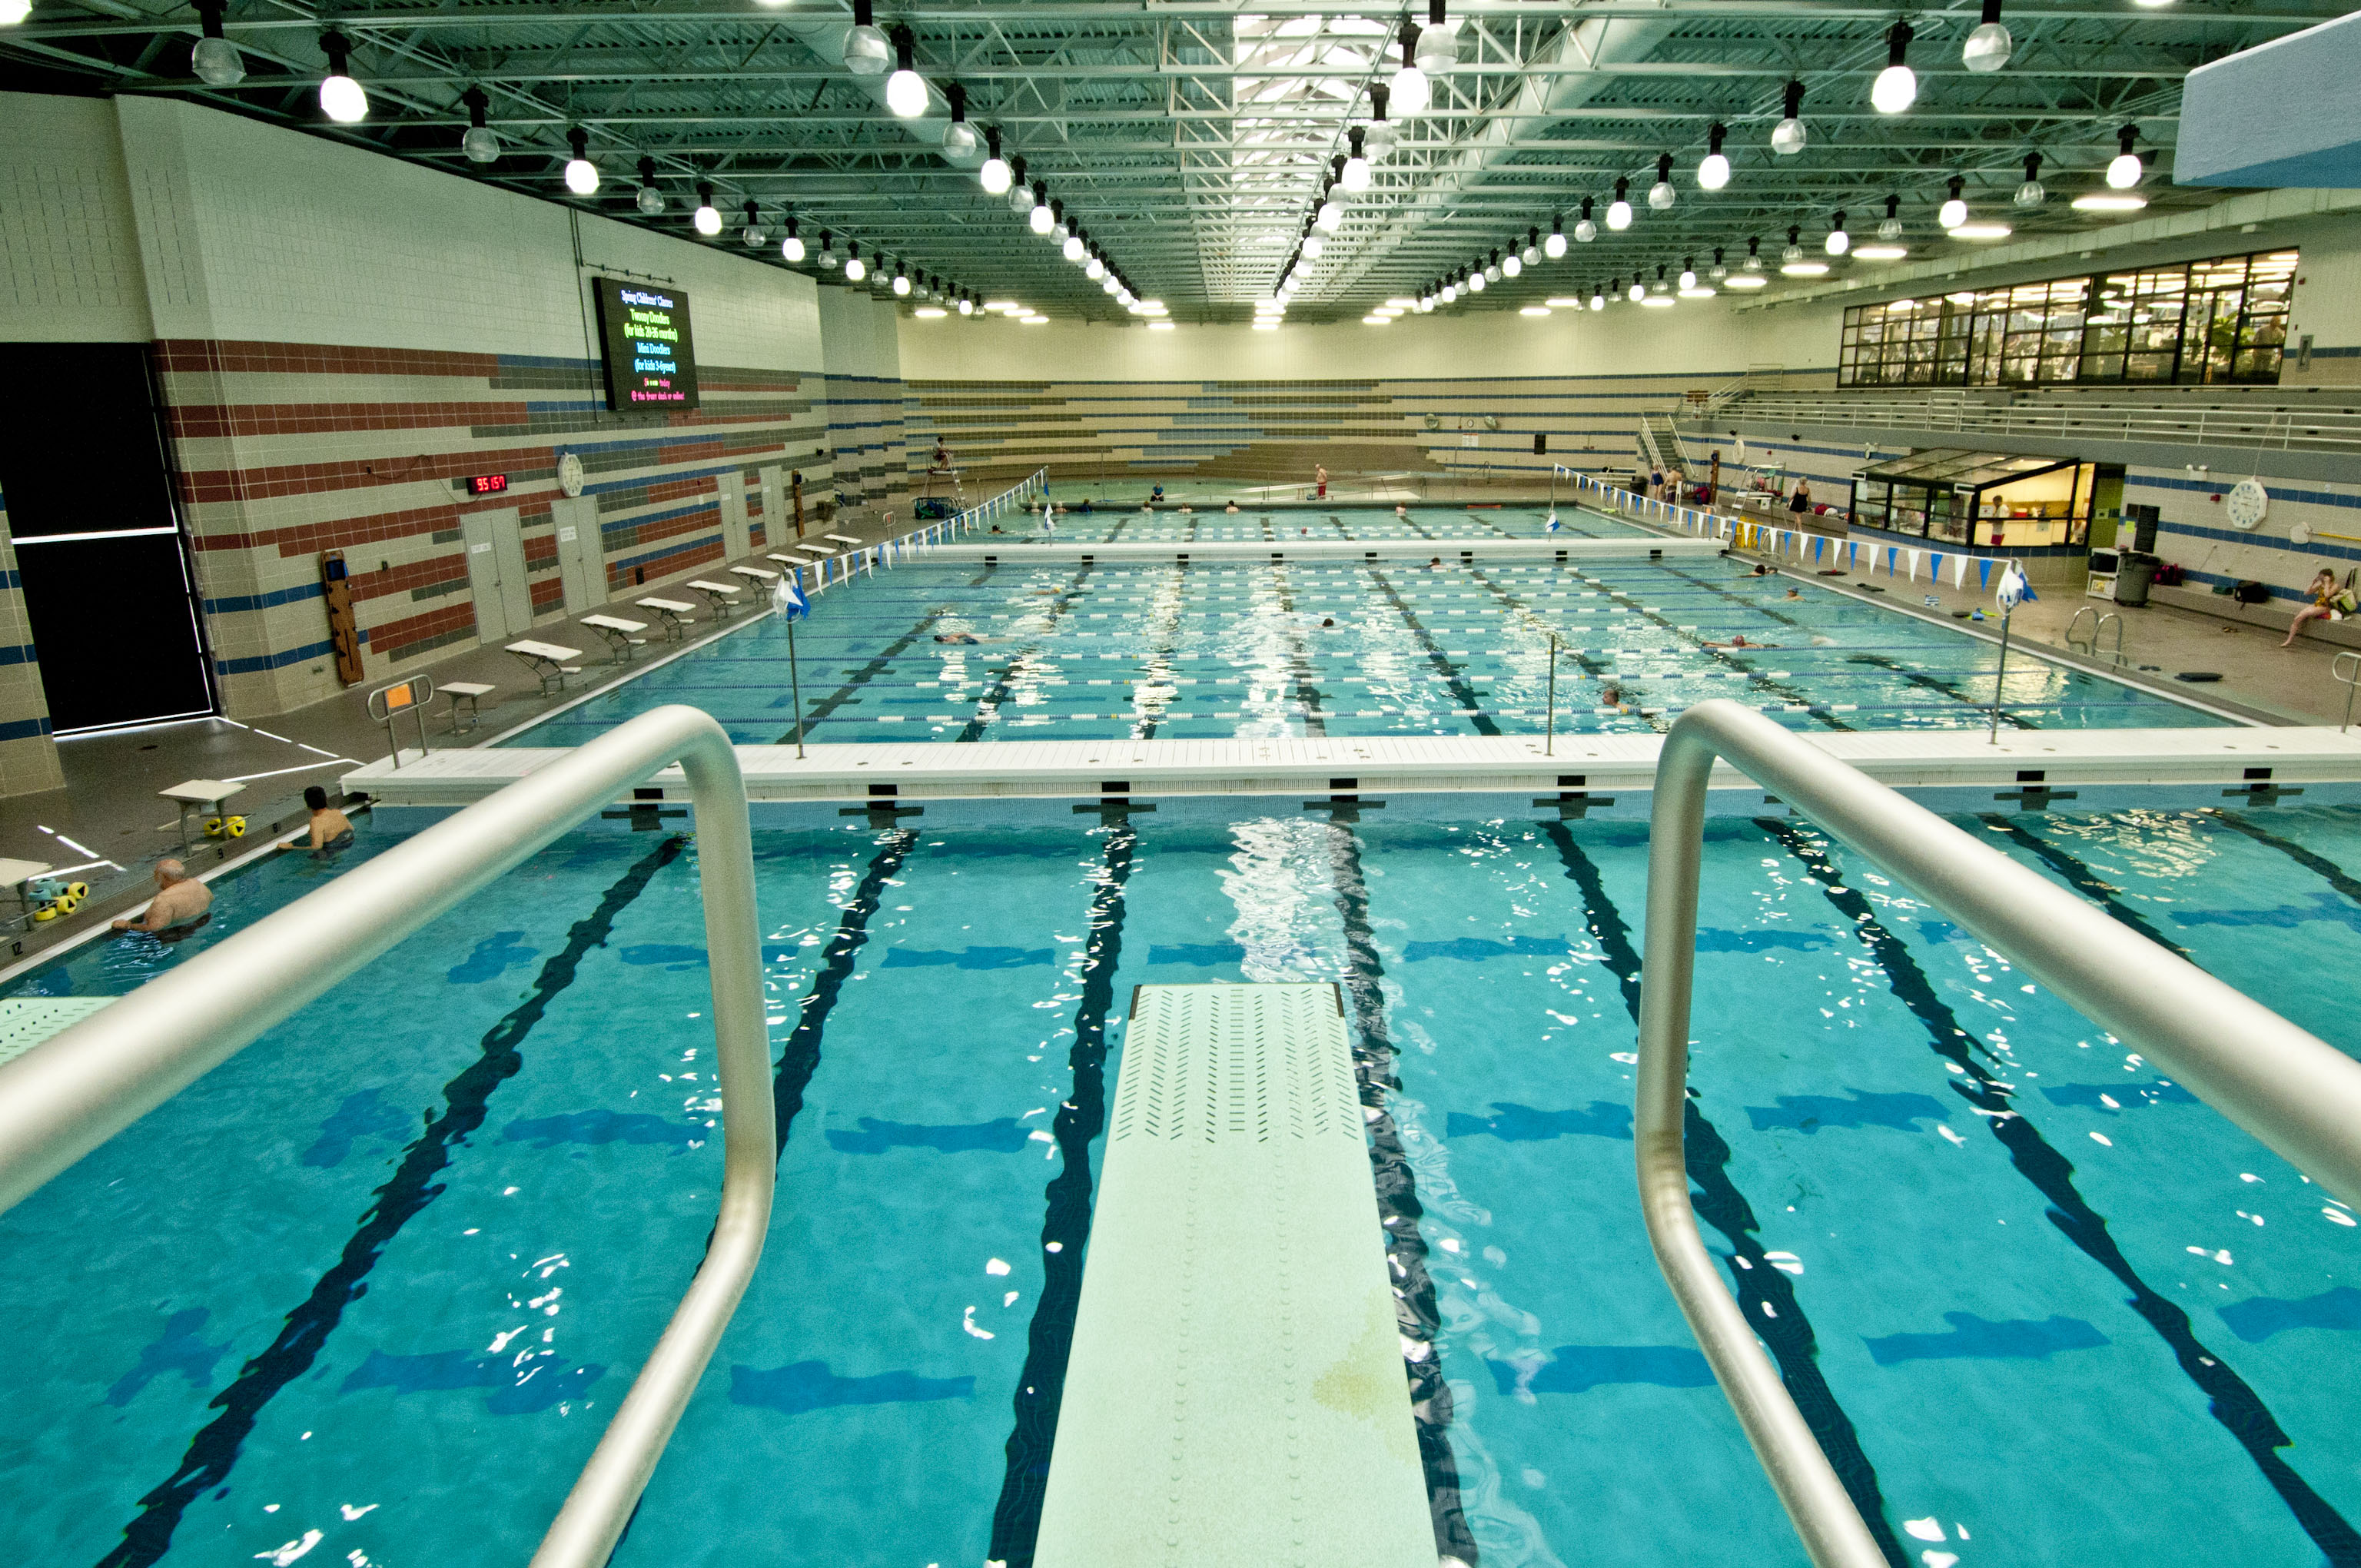 Recenter diving board rules park authority - Swimming pool diving board regulations ...